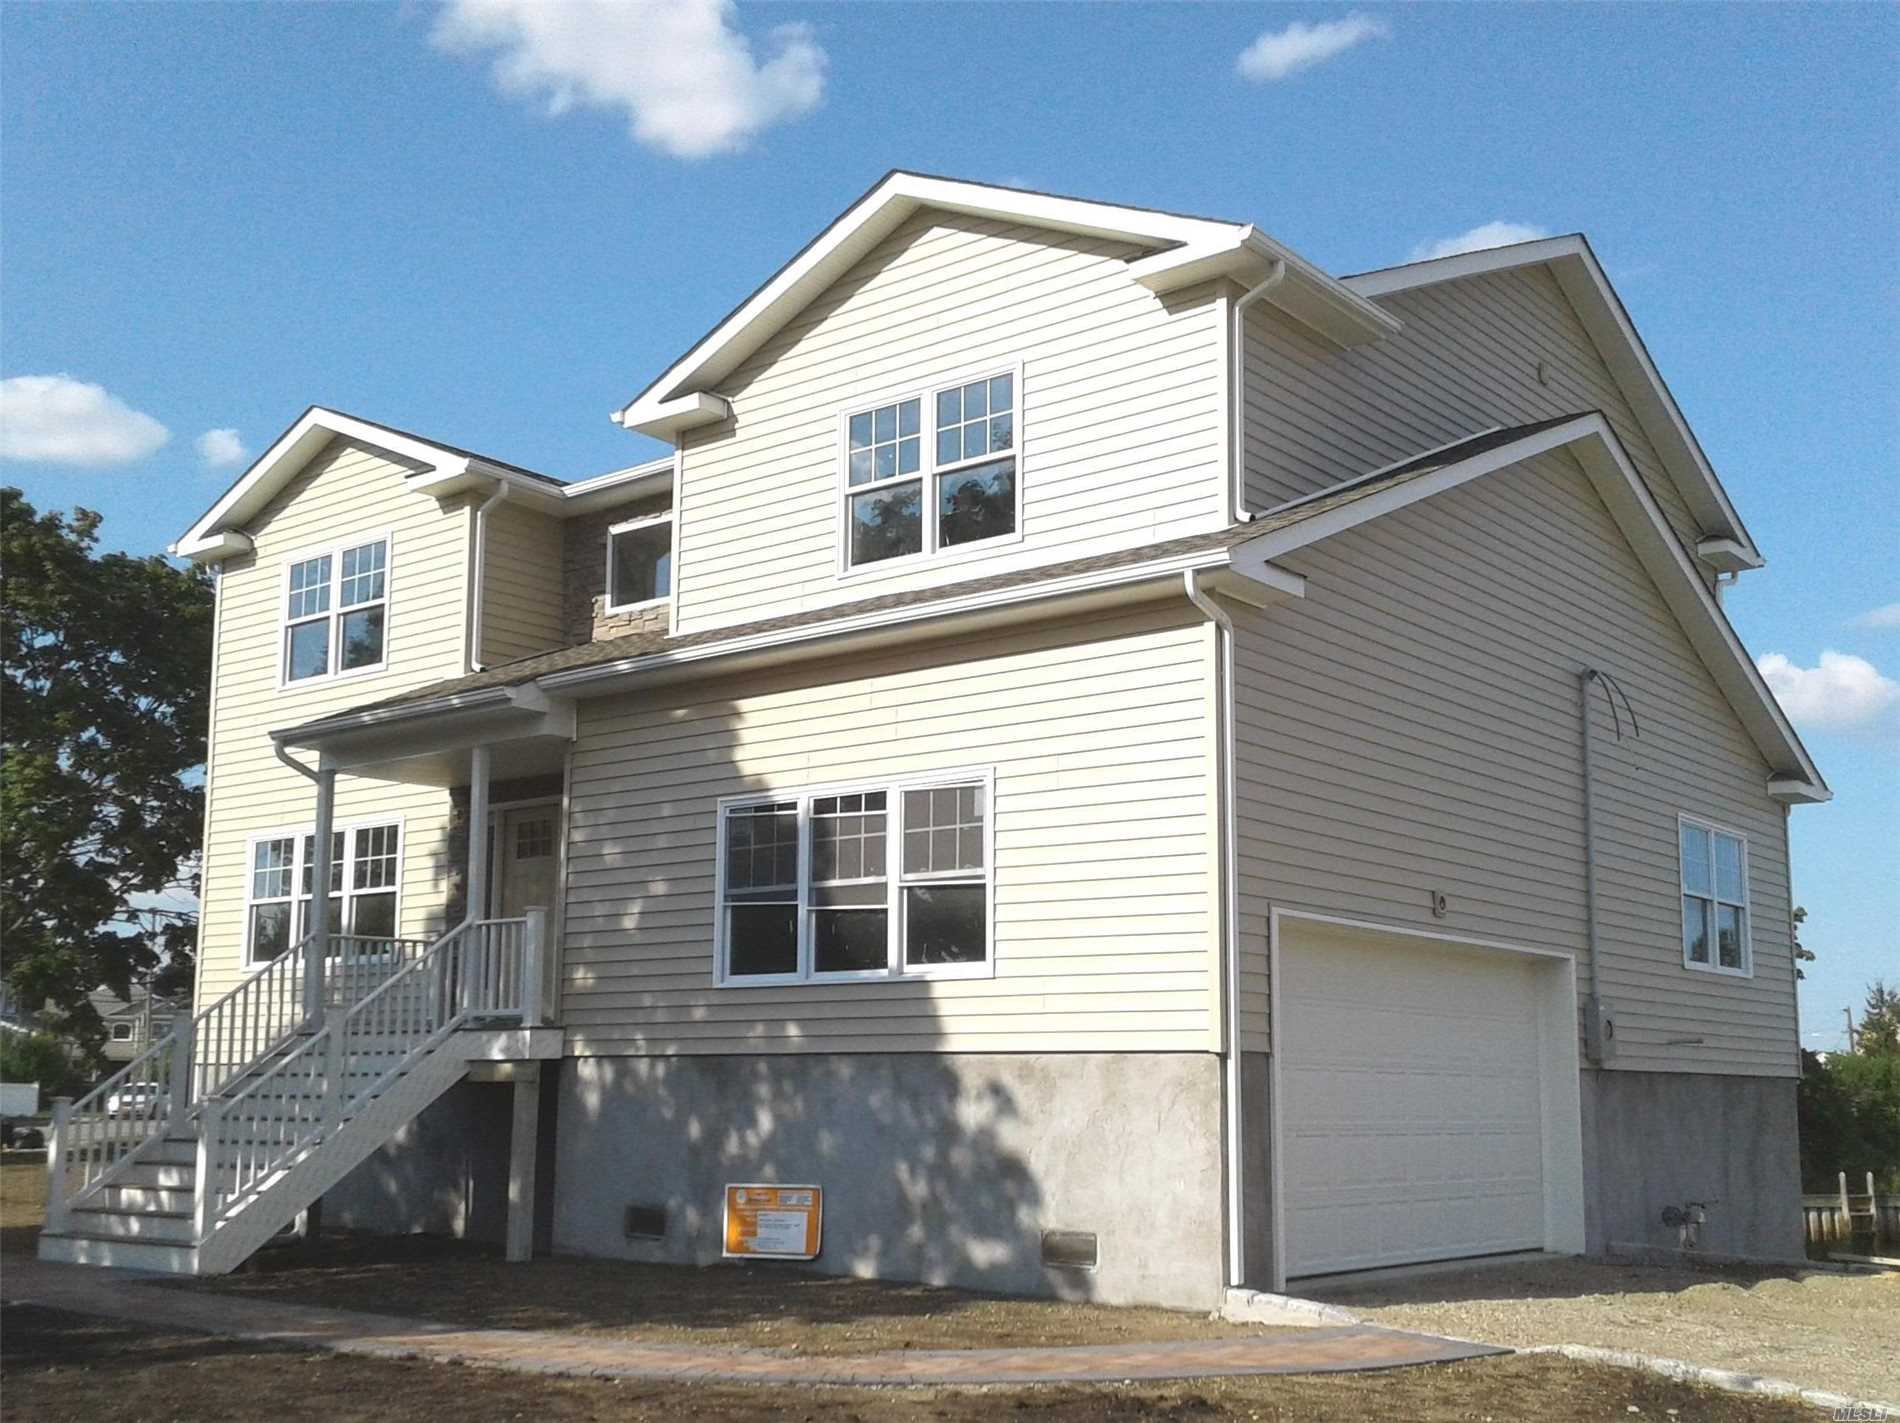 Gorgeous, Sprawling, Brand New Colonial In Seaford Sd #6. Build Is Fema Compliant So Low Flood Insurance(Approx Only $500.P/Year). No Expense Spared On This 3080 Sf, 4 Bedrm, 2.5 Bath Beauty With Waterview! Custom Wood Floors & So Much More To Fall In Love With!! Cac Of Course!! Mbr Has 2 Wic & A Classicly Designed En Suite, Full Bath With Double Sinks, Tub And Shower! Upstairs Laundry! Huge 2 Car Garage, Many Green Features!! Come See Asap!! (Buyer Pays Transfer Tax, Water/Sewer, Final Survey)